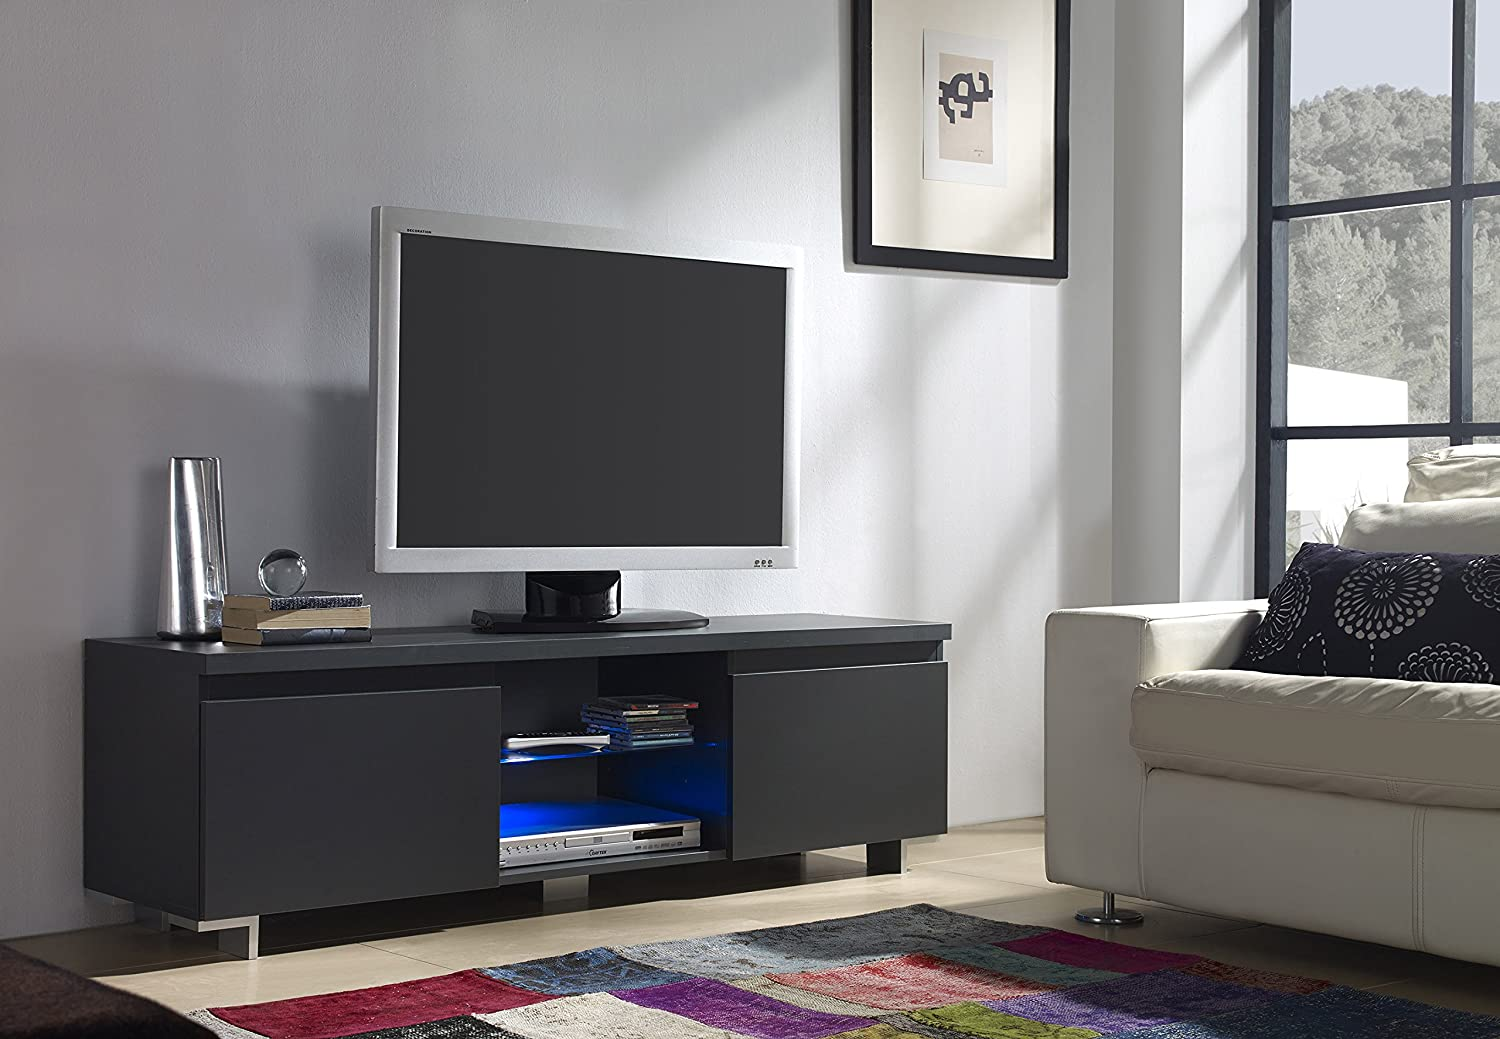 Meuble Tv 2 Porte En Gris Anthracite Avec Led Amazon Fr Cuisine  # Meuble A Led De Tv